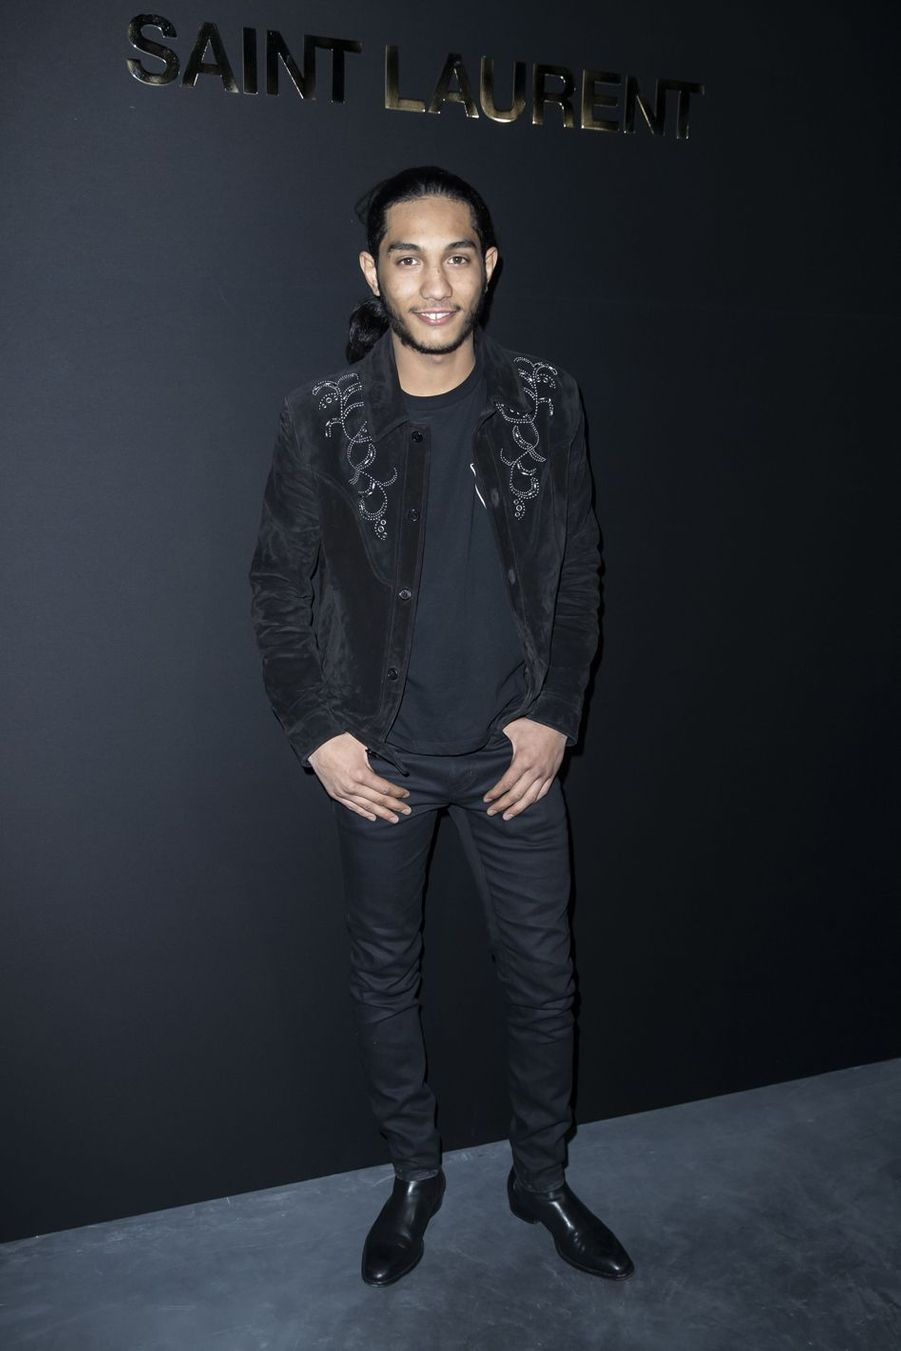 Dylan Robert au défilé Saint Laurent lors de la Fashion Week de Paris le 26 février 2019